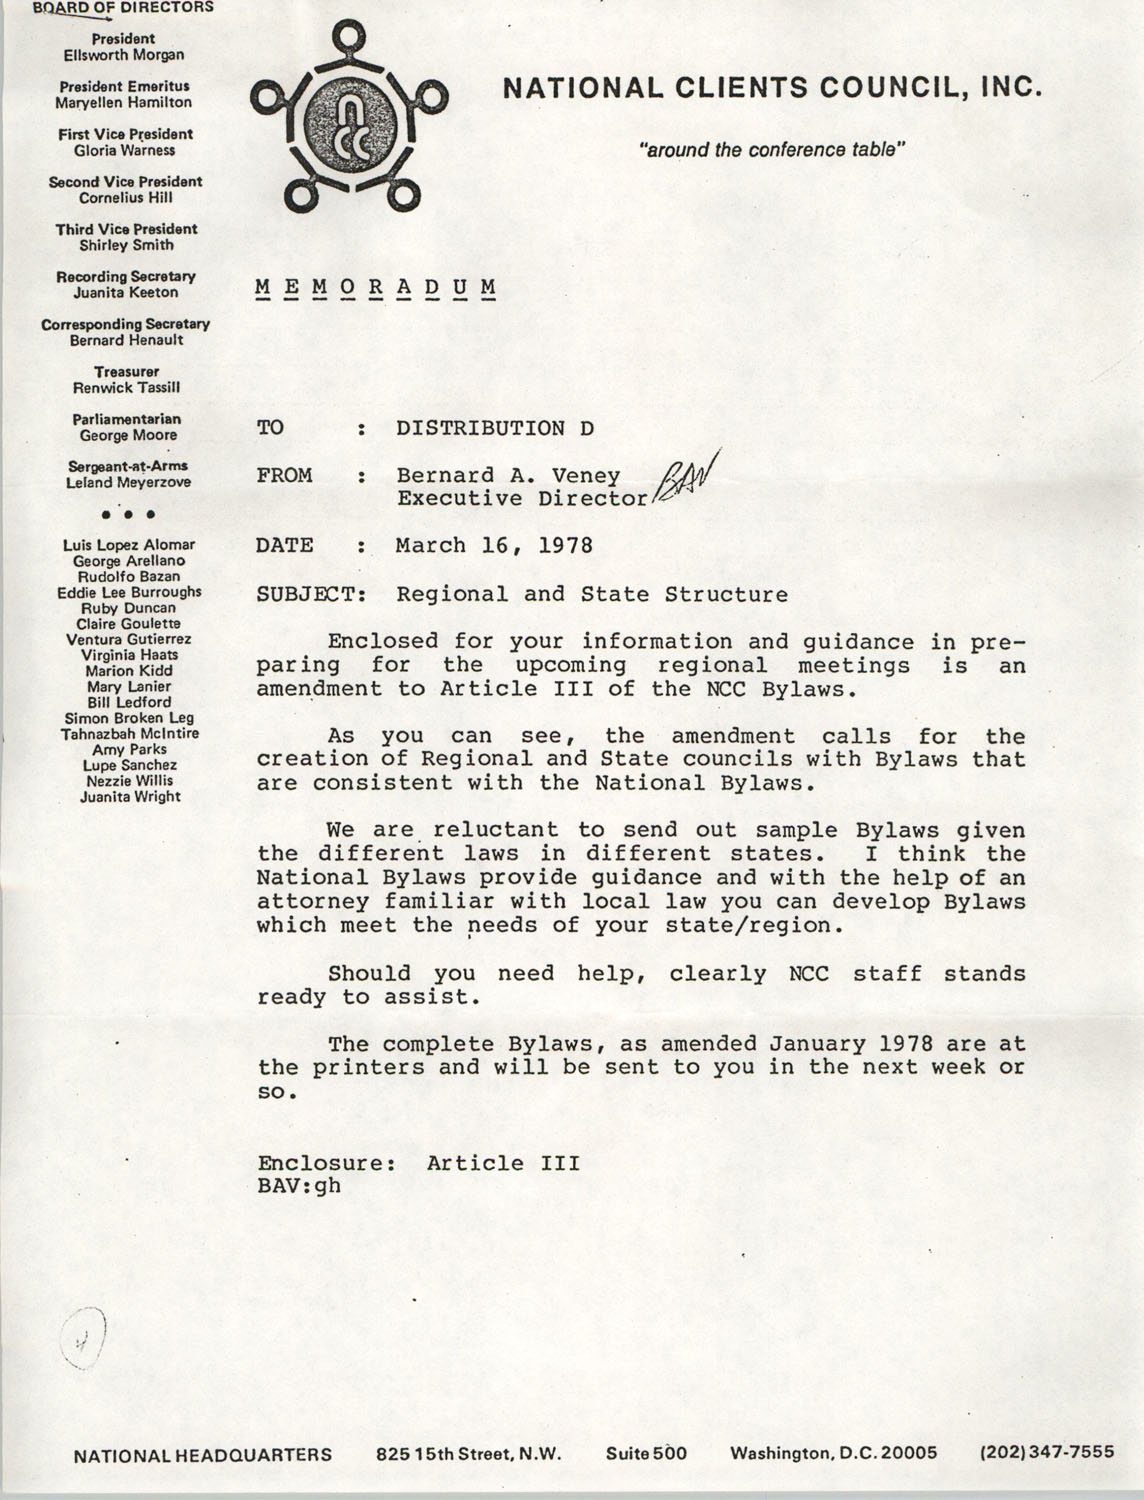 Memorandum from Bernard A. Veney to